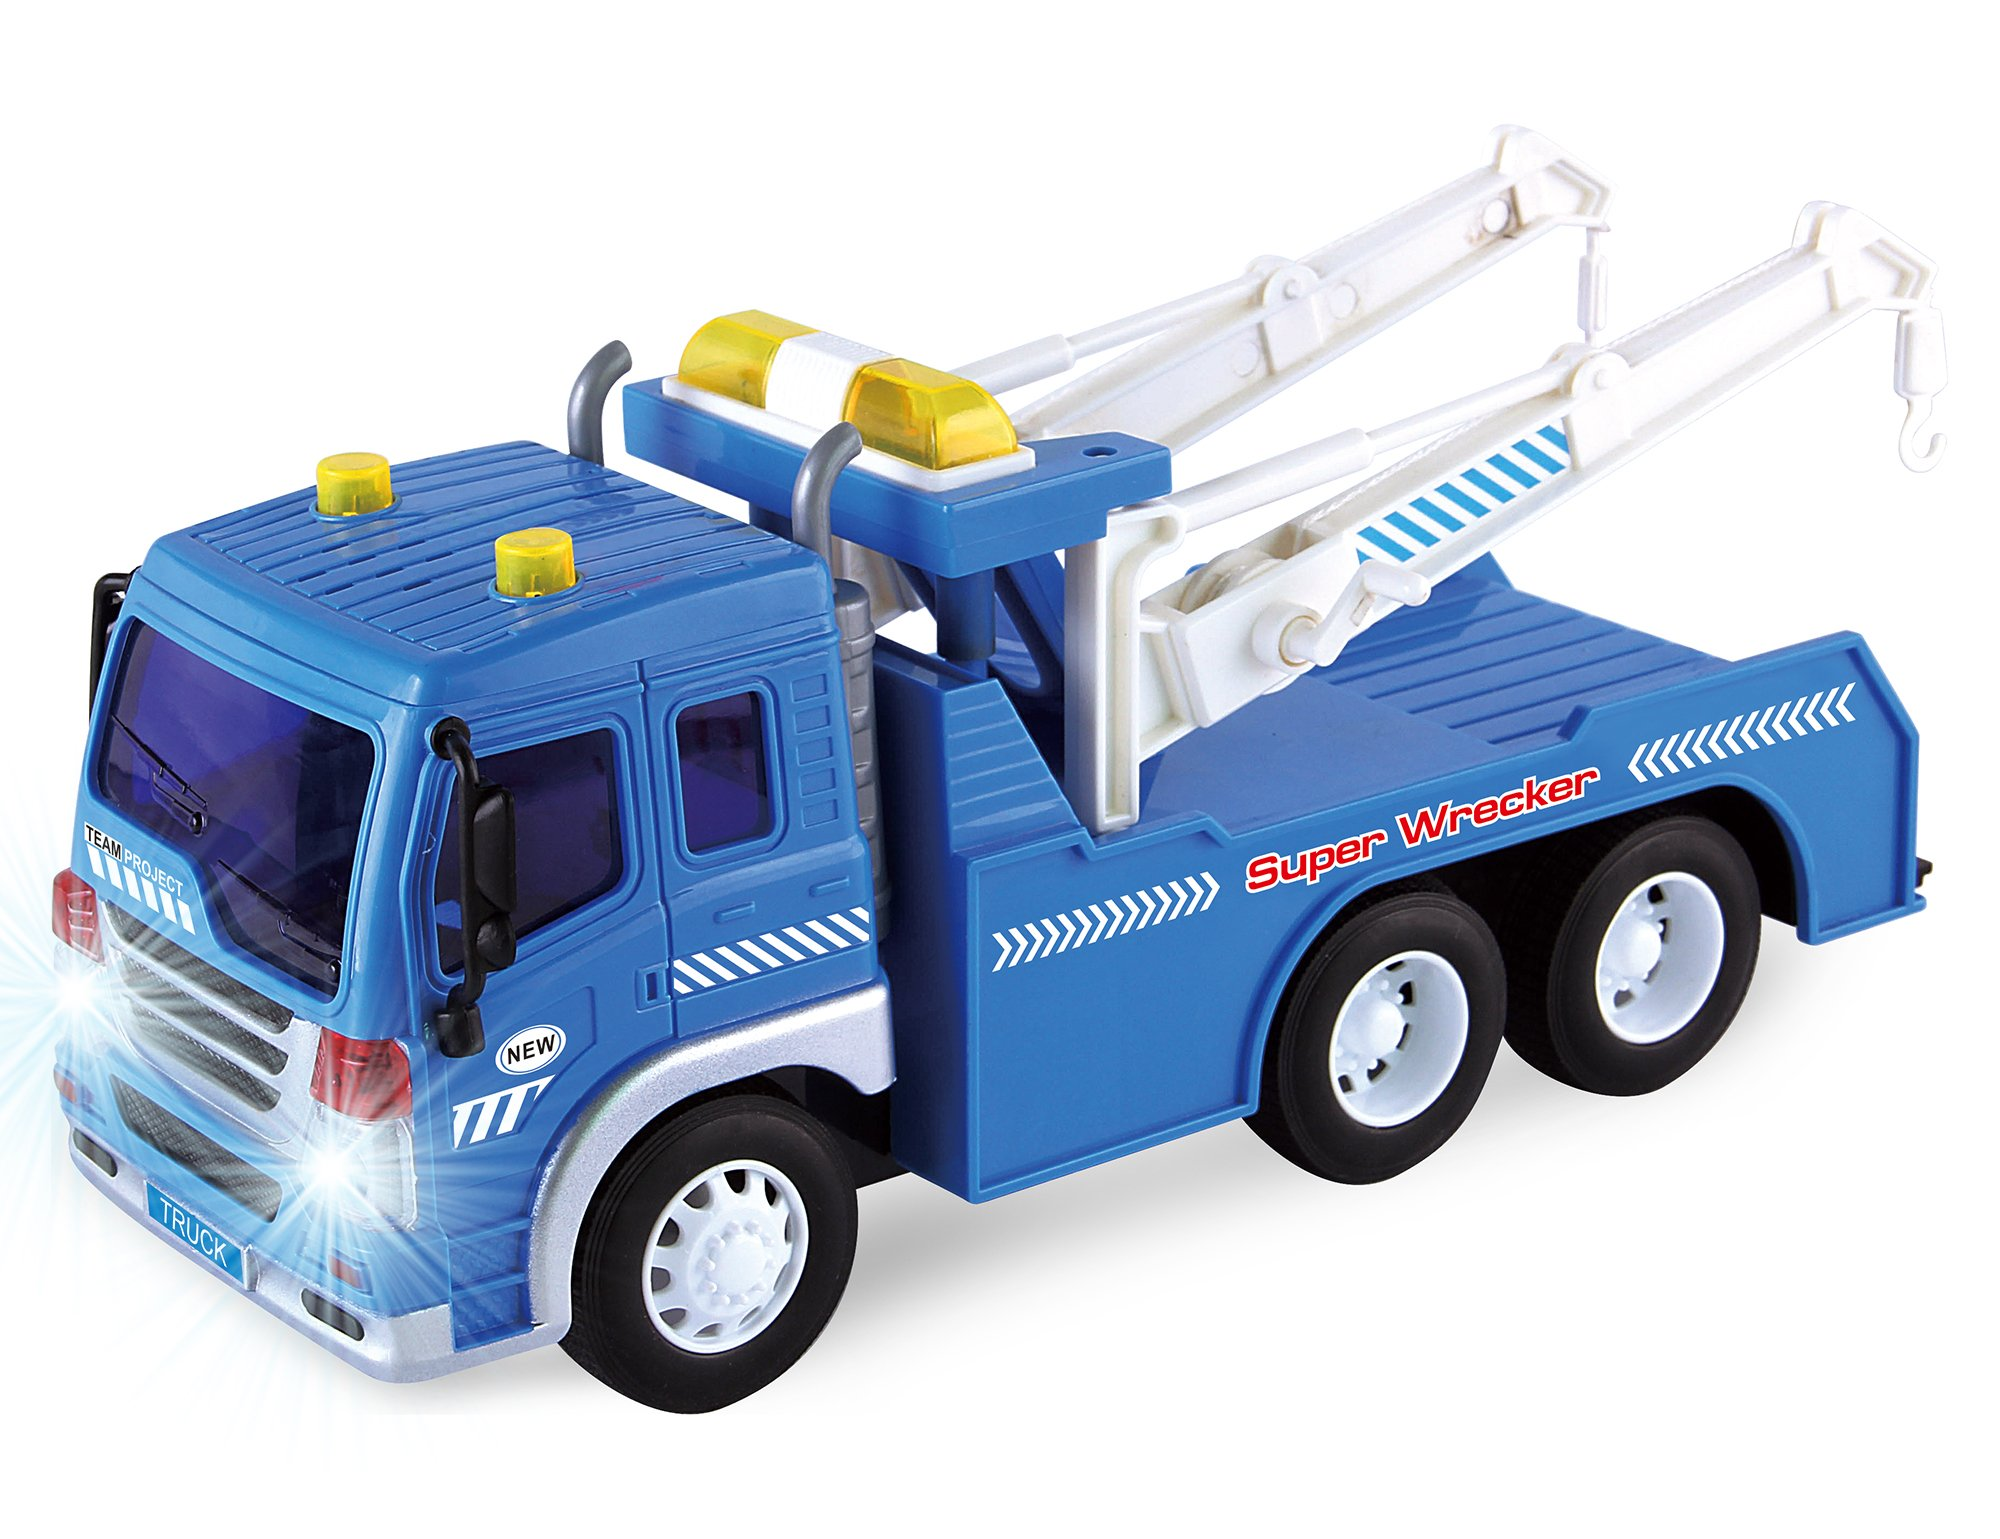 Friction Powered Wrecker Tow Truck 1:16 Toy Towing Vehicle with Lights and Sounds (Double Hooks)